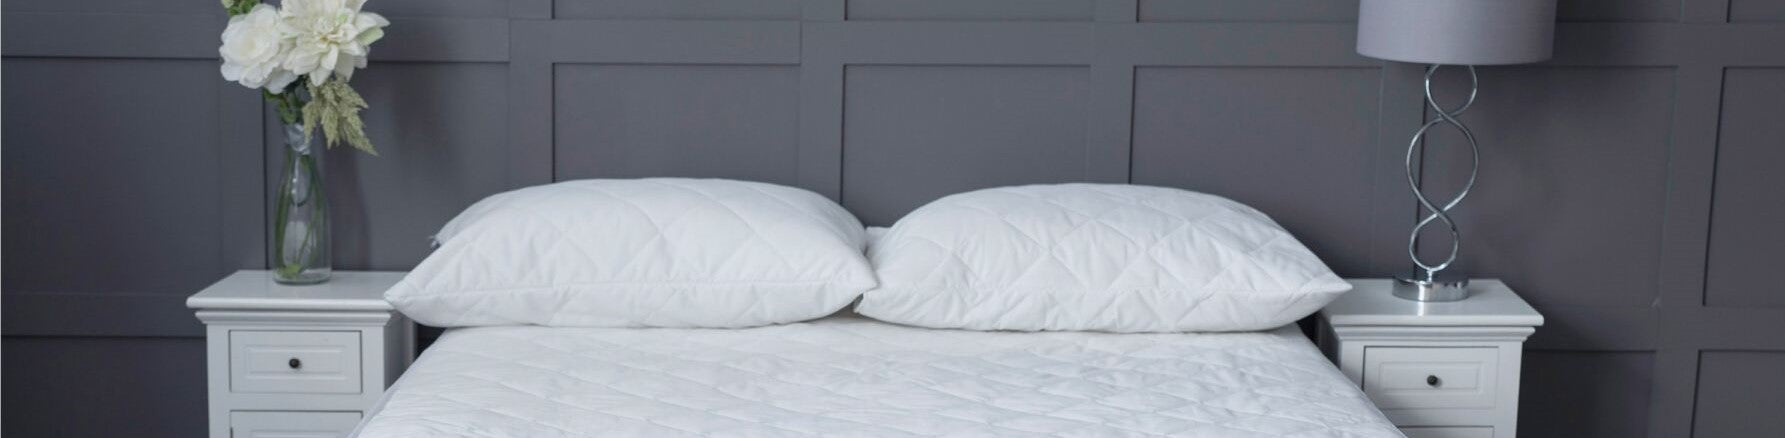 Cotton Touch Quilted Protectors - Standard & Waterproof